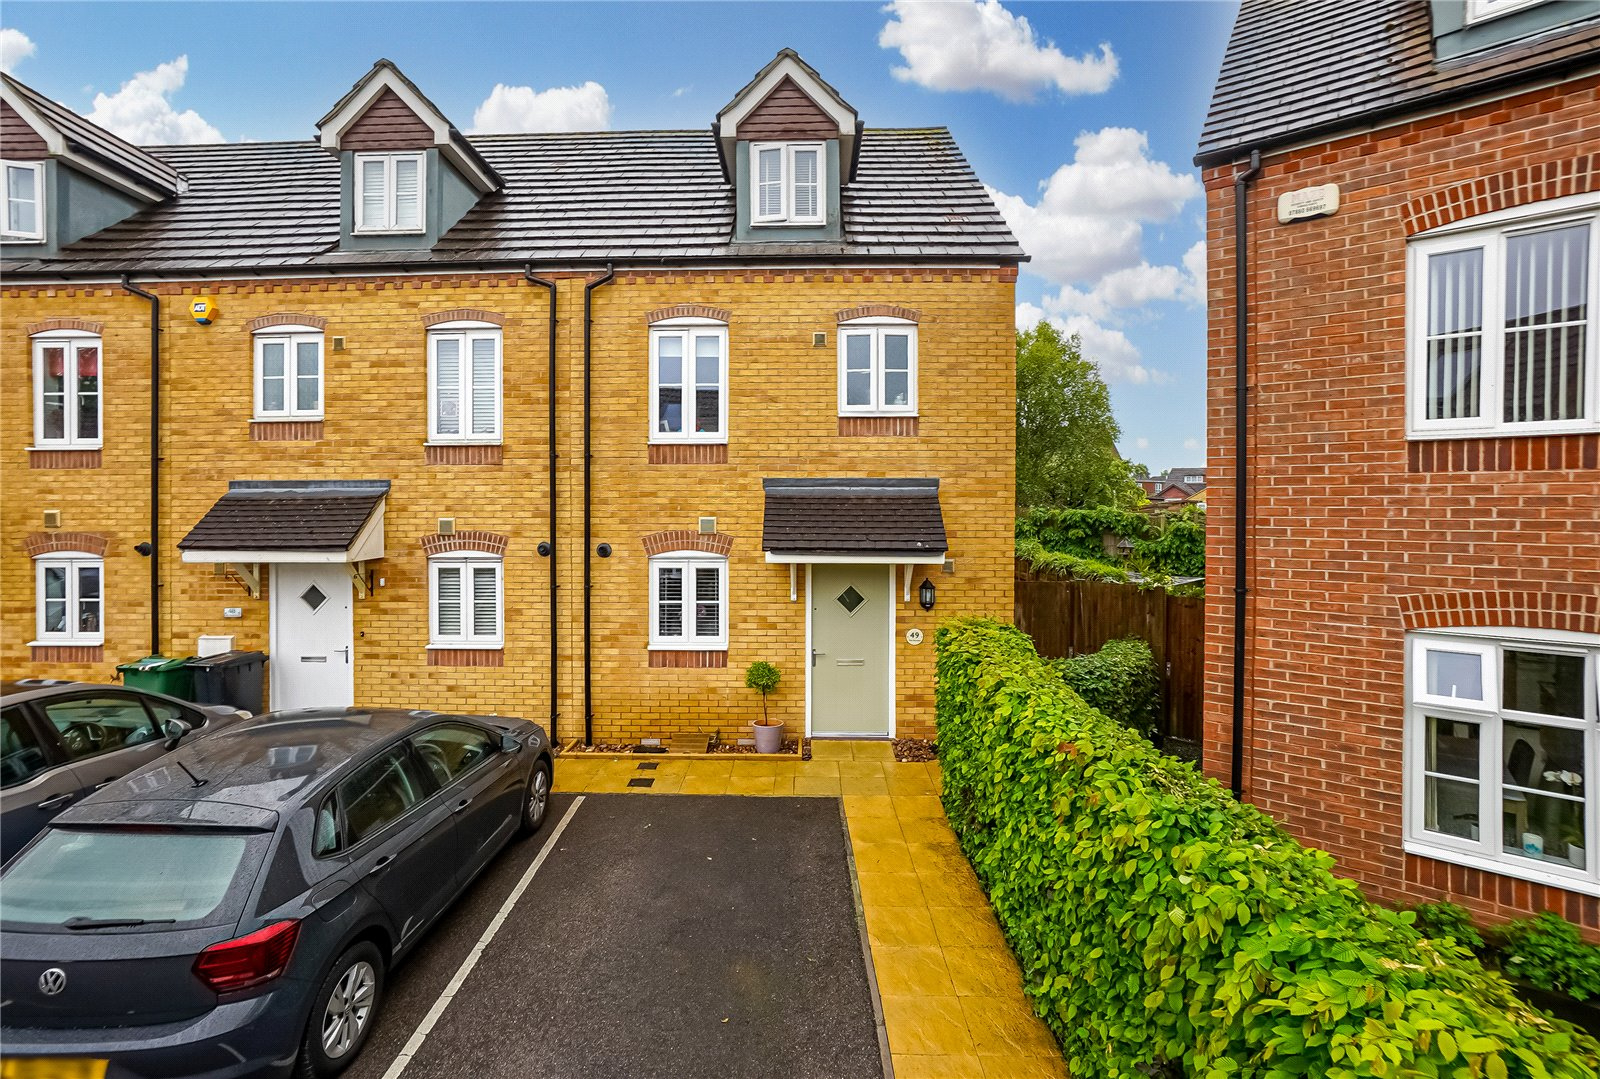 3 bed house for sale in The Farrows, Maidstone, ME15